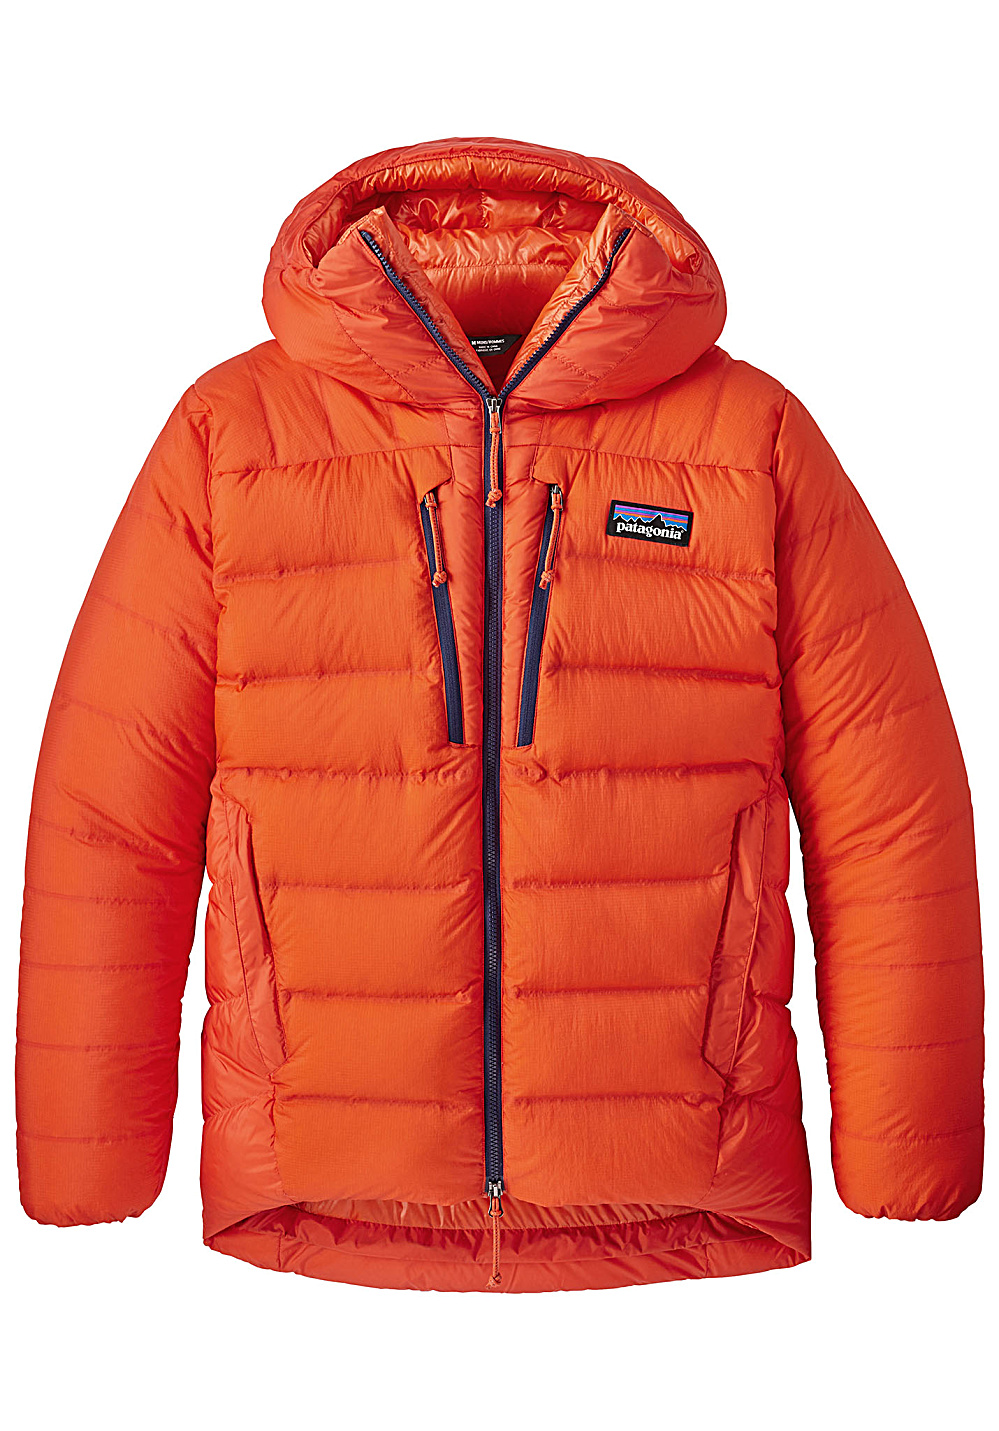 doudoune homme orange